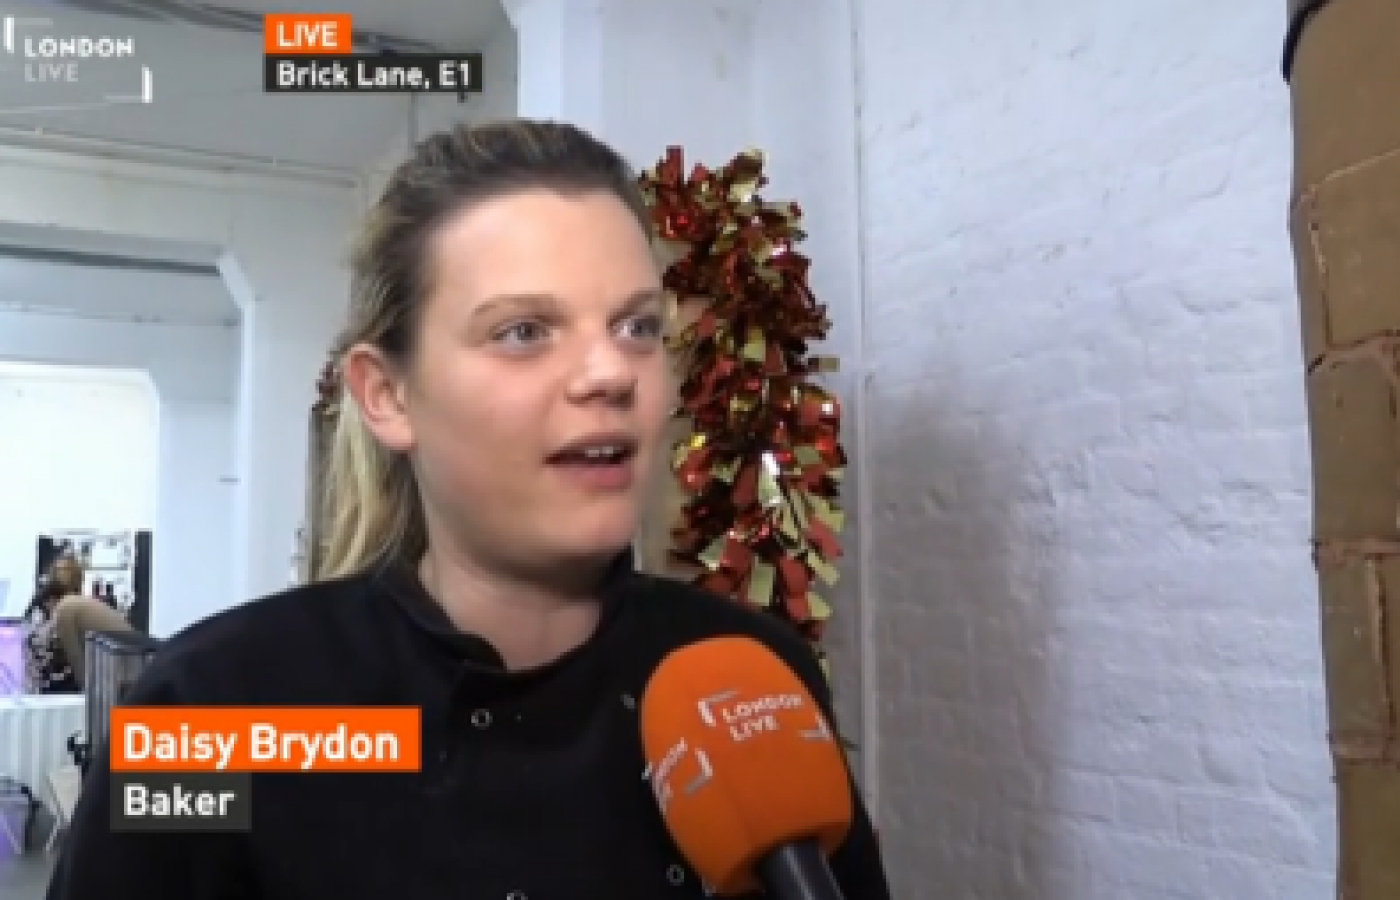 London Live interview about the making of the 8ft gingerbread chimney at Trewman Brewery